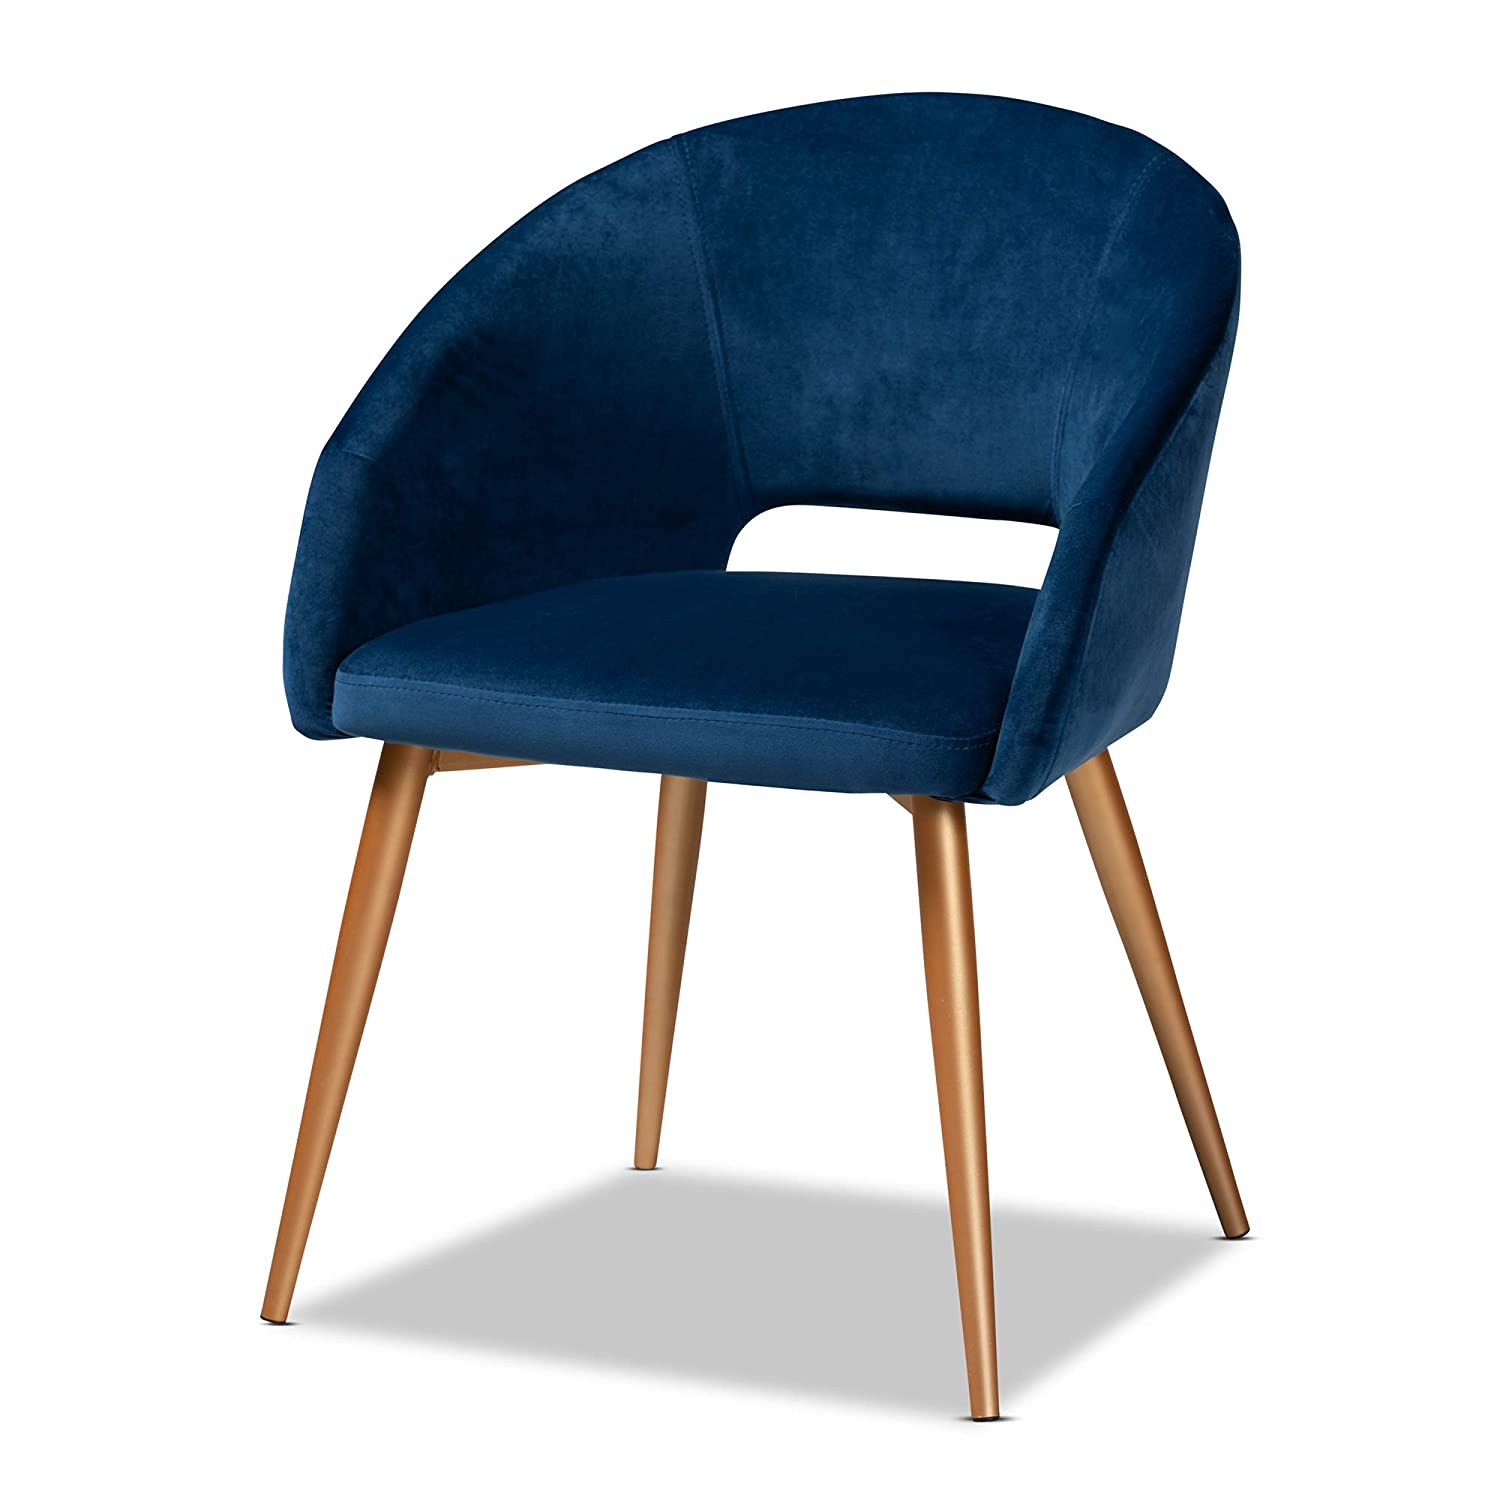 Baxton Studio Dining Chairs, Navy Blue/Gold